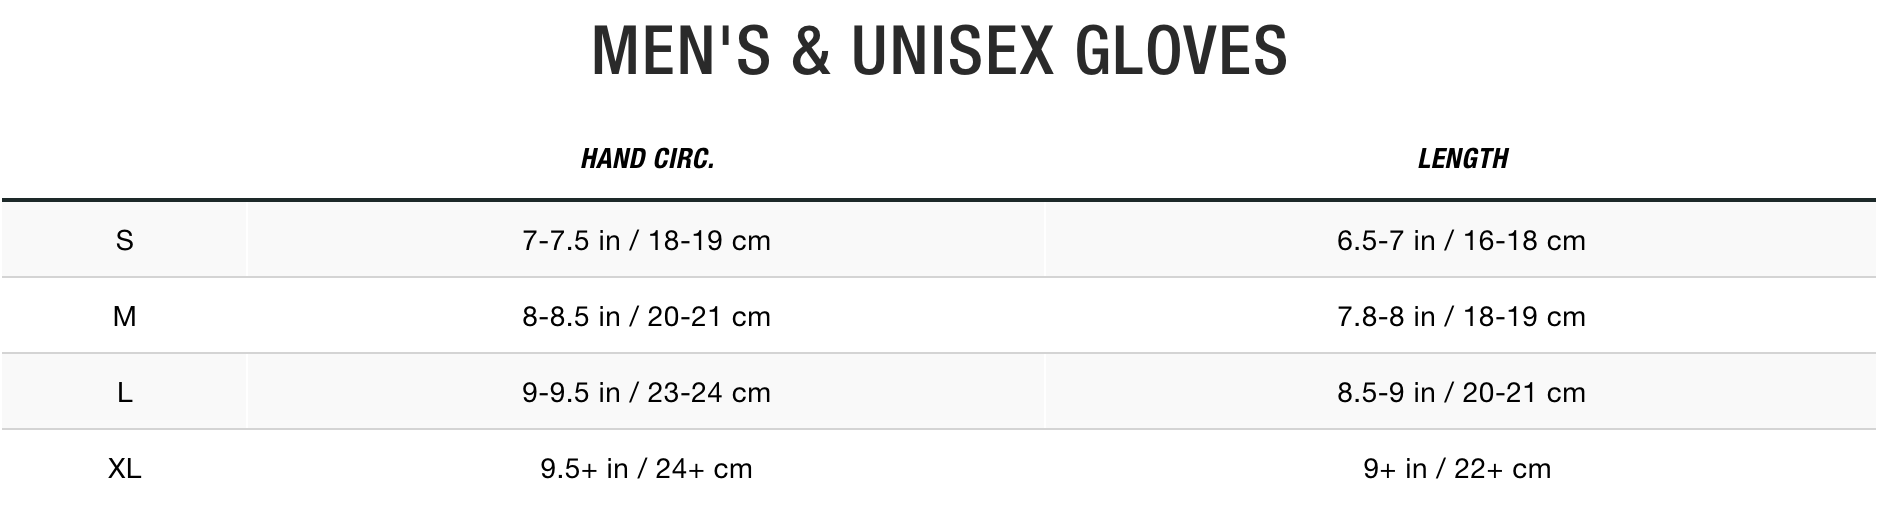 TNF Men & Unisex Gloves